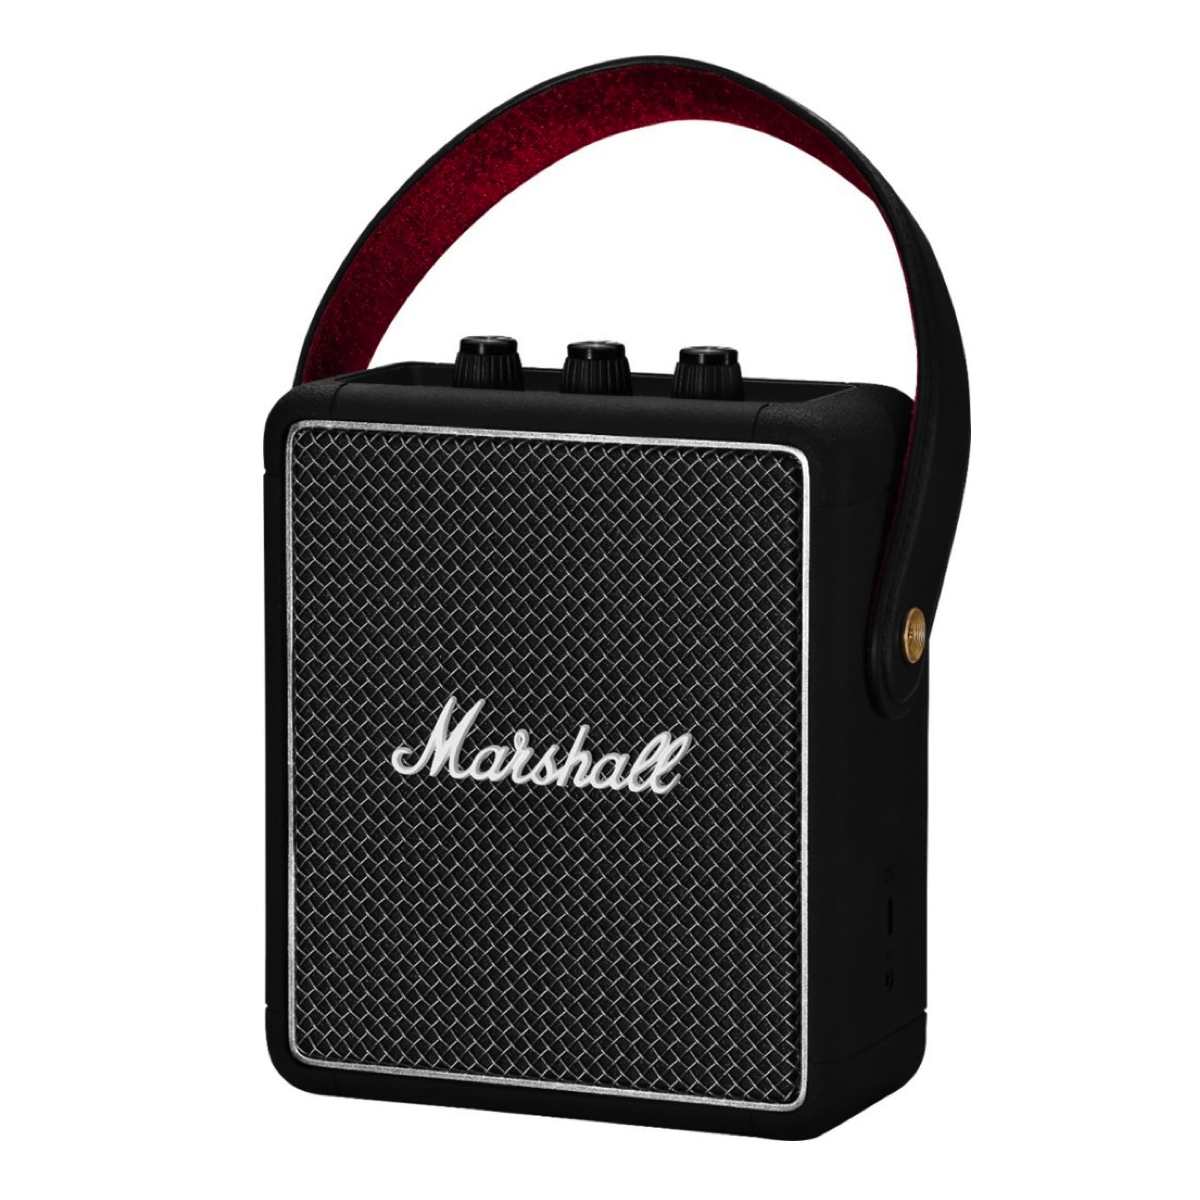 Marshall Stockwell II - Portable Bluetooth Speaker, Marshall, Bluetooth Wifi Speaker - AVStore.in